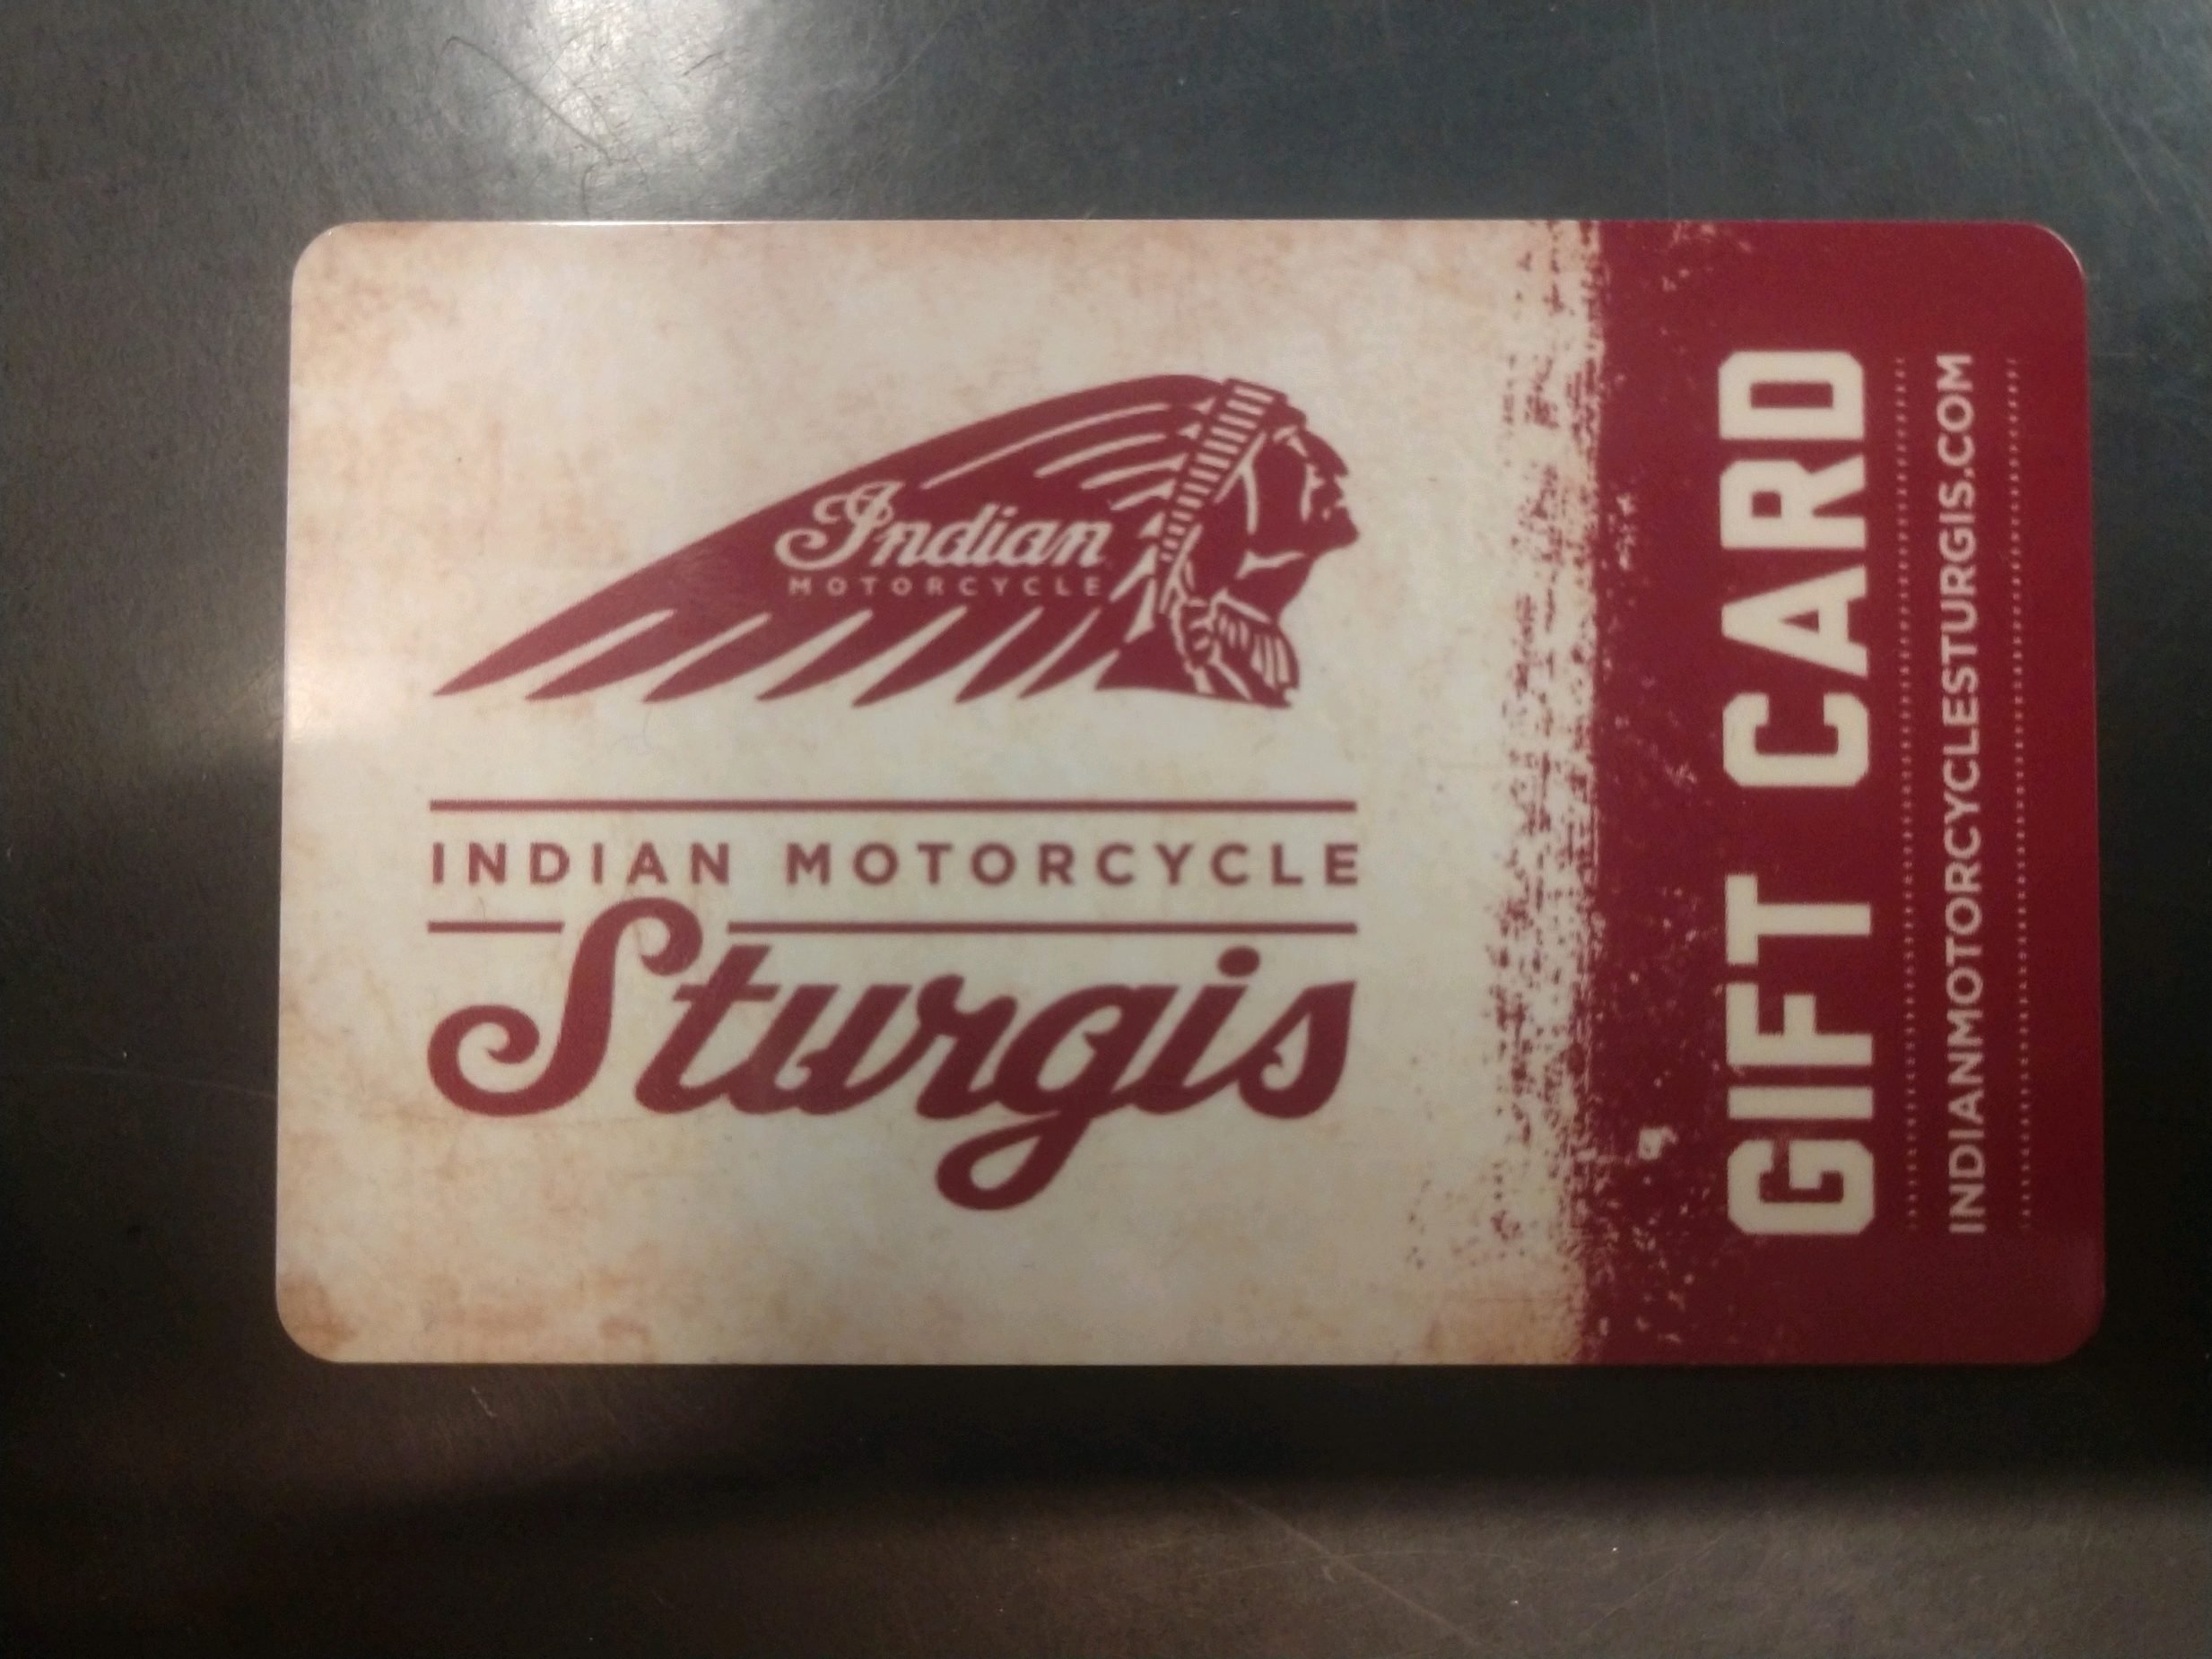 Indian Motorcycle Sturgis Gift Card